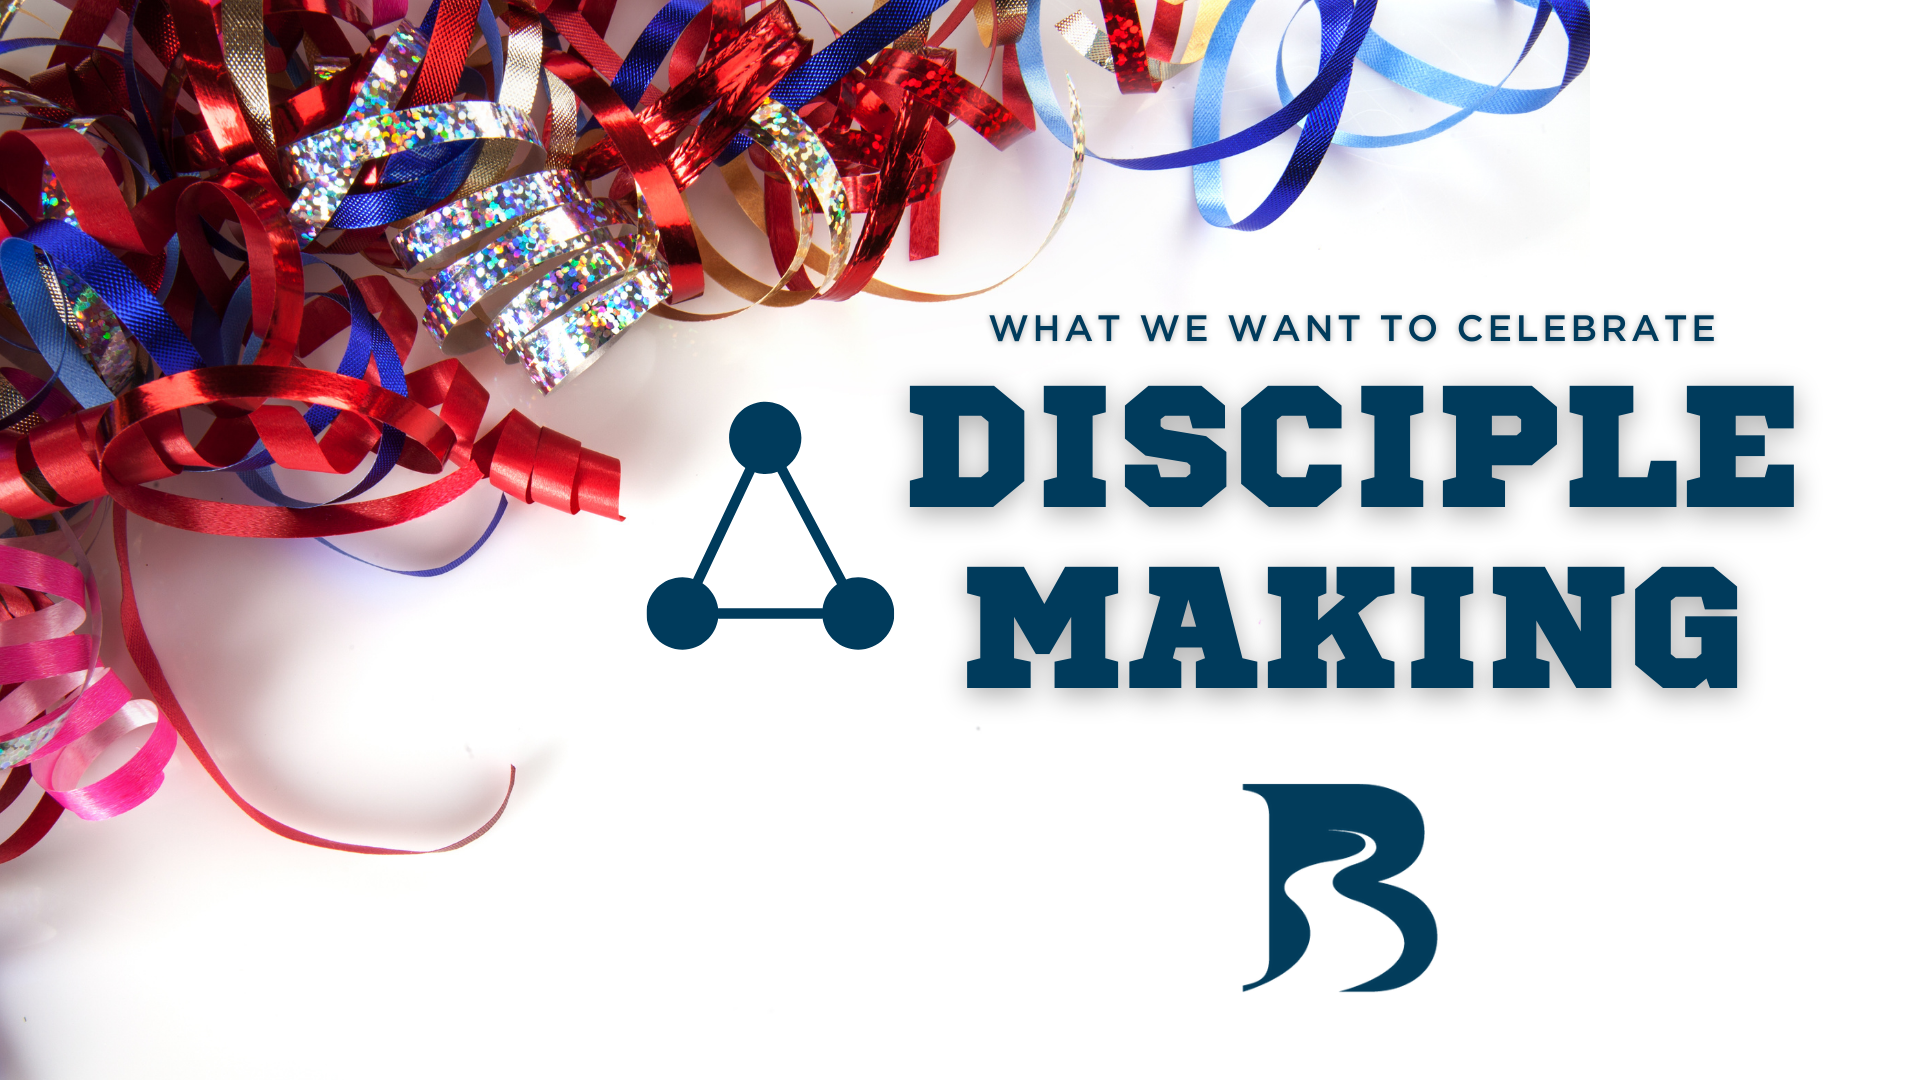 We WANT to be Disciple(makers)